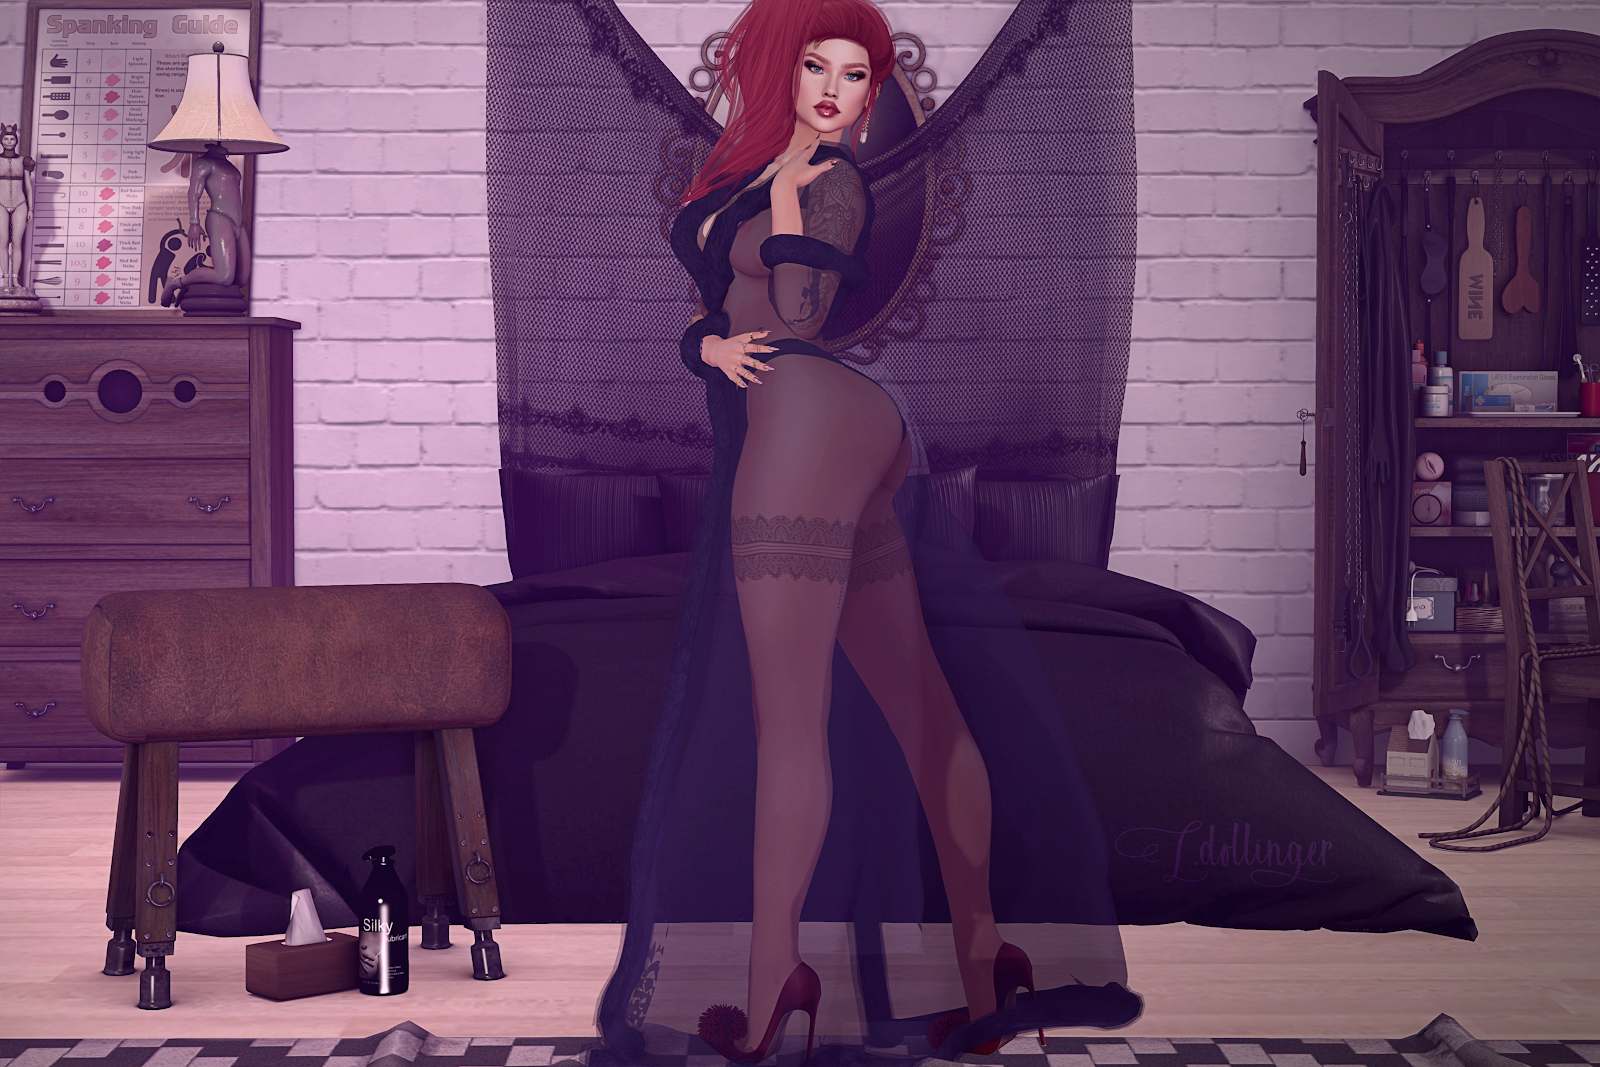 https://www.flickr.com/photos/itdollz/45925838465/in/photostream/lightbox/